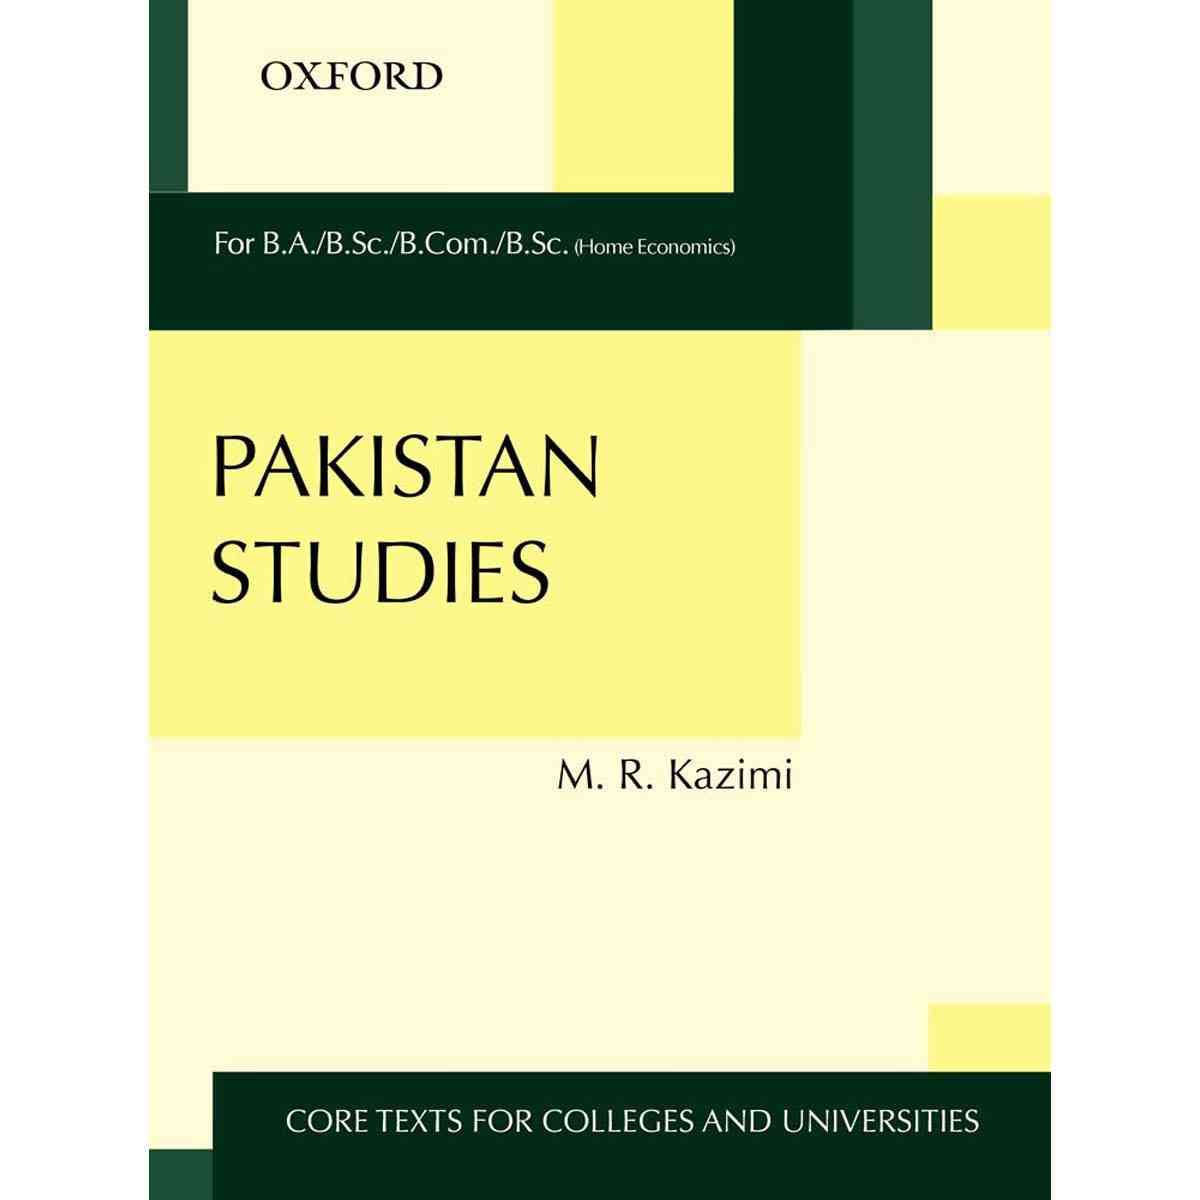 Oxford Books Pakista